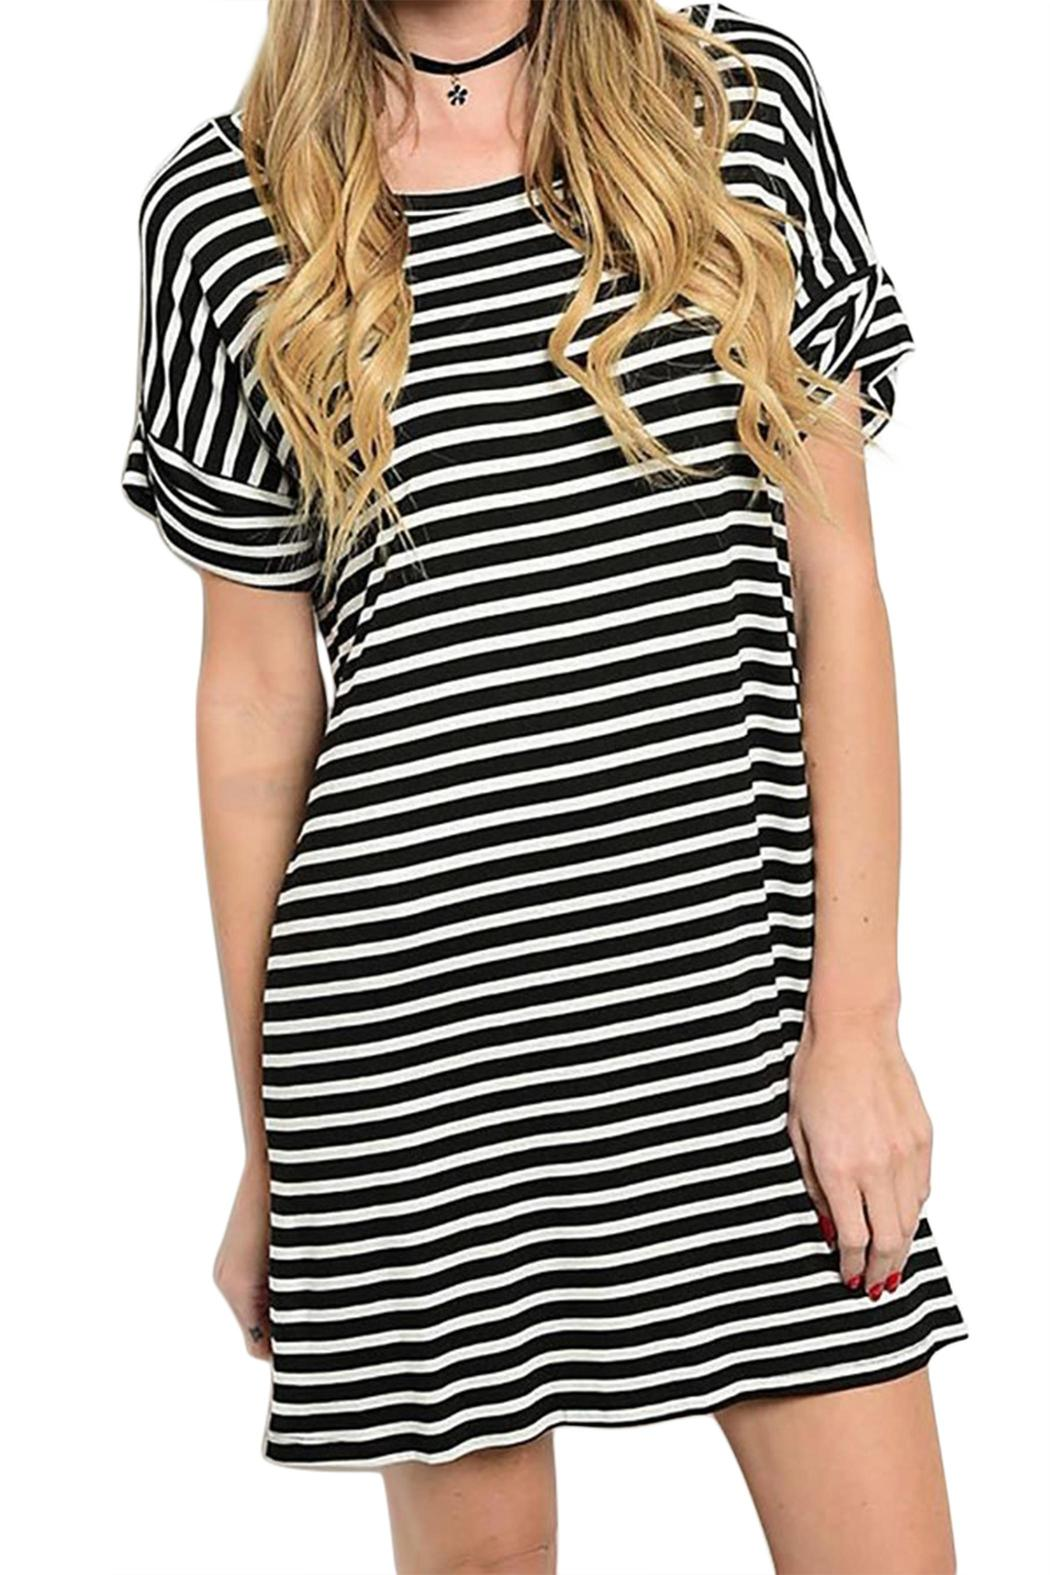 65e471884830 Inance Loose Fit Striped Dress from Florida — Shoptiques